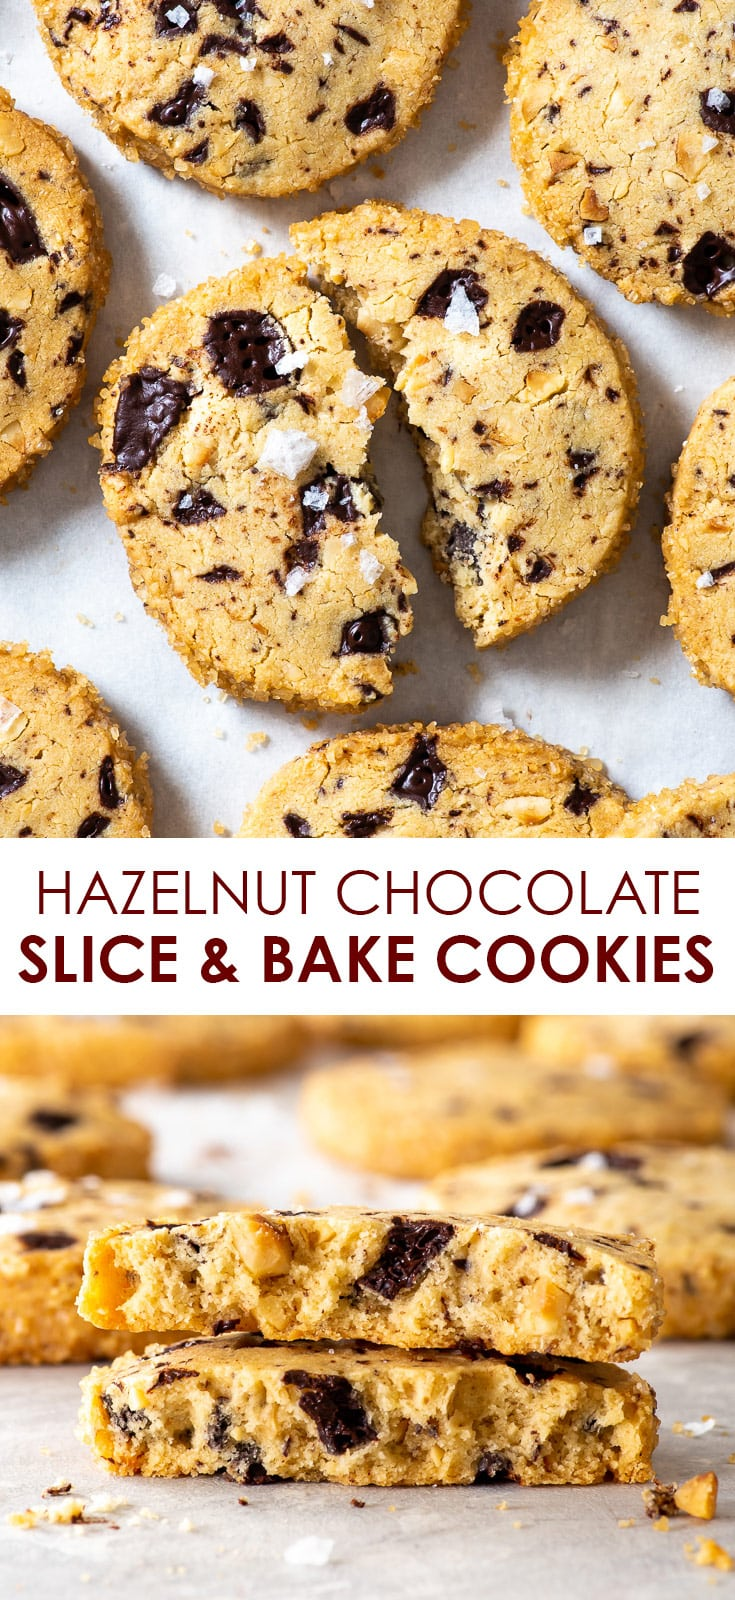 Hazelnut Chocolate Slice and Bake Eggless Cookies (Gluten Free, Egg Free) - Here's why you'll love these slice and bake eggless cookies: they're easy to make, require no fancy equipment, have the most wonderful buttery melt-in-the-mouth texture and the hazelnut + chocolate combination is simply to die for. Chocolate cookies recipe. Gluten free cookies. Easy cookie recipe. Gluten free dessert. #cookies #glutenfree